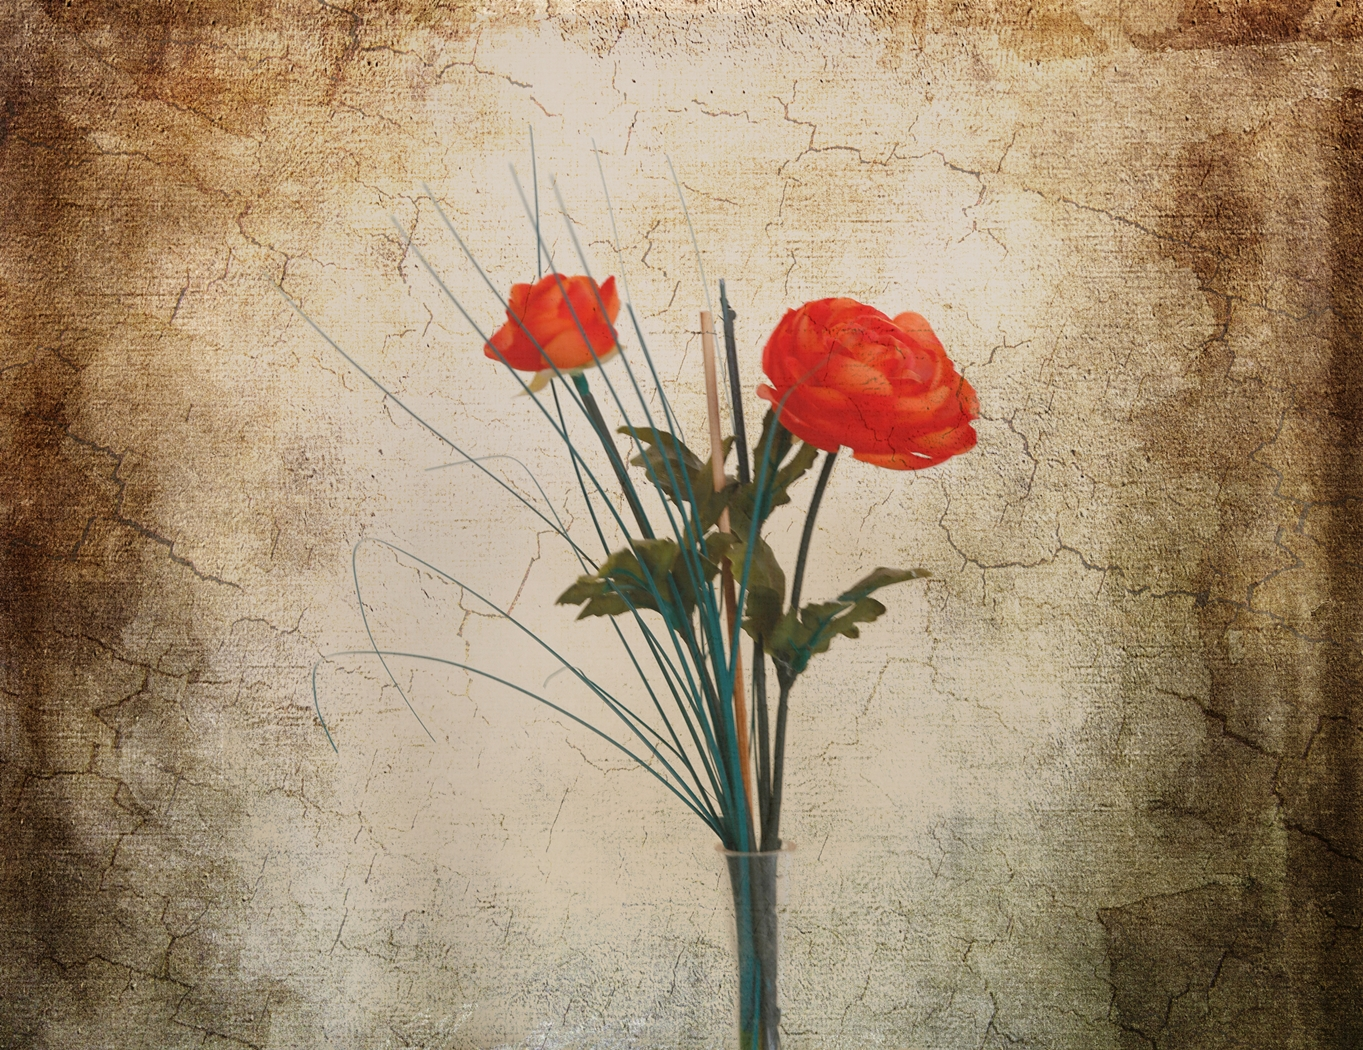 ROSE RED by Rojer Weightman